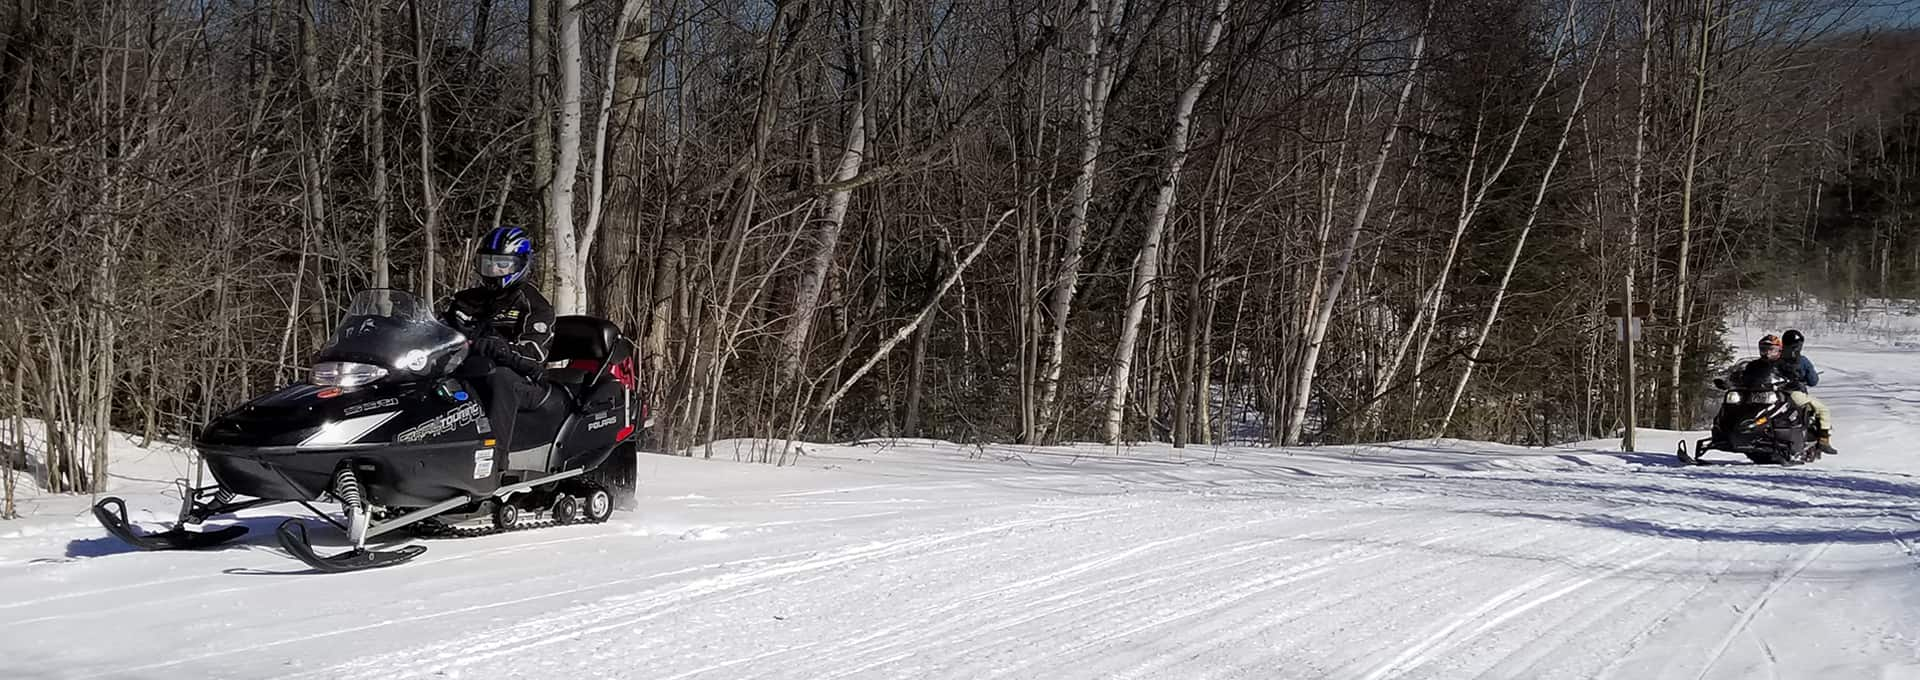 Snowmobiling trails in Northern NH